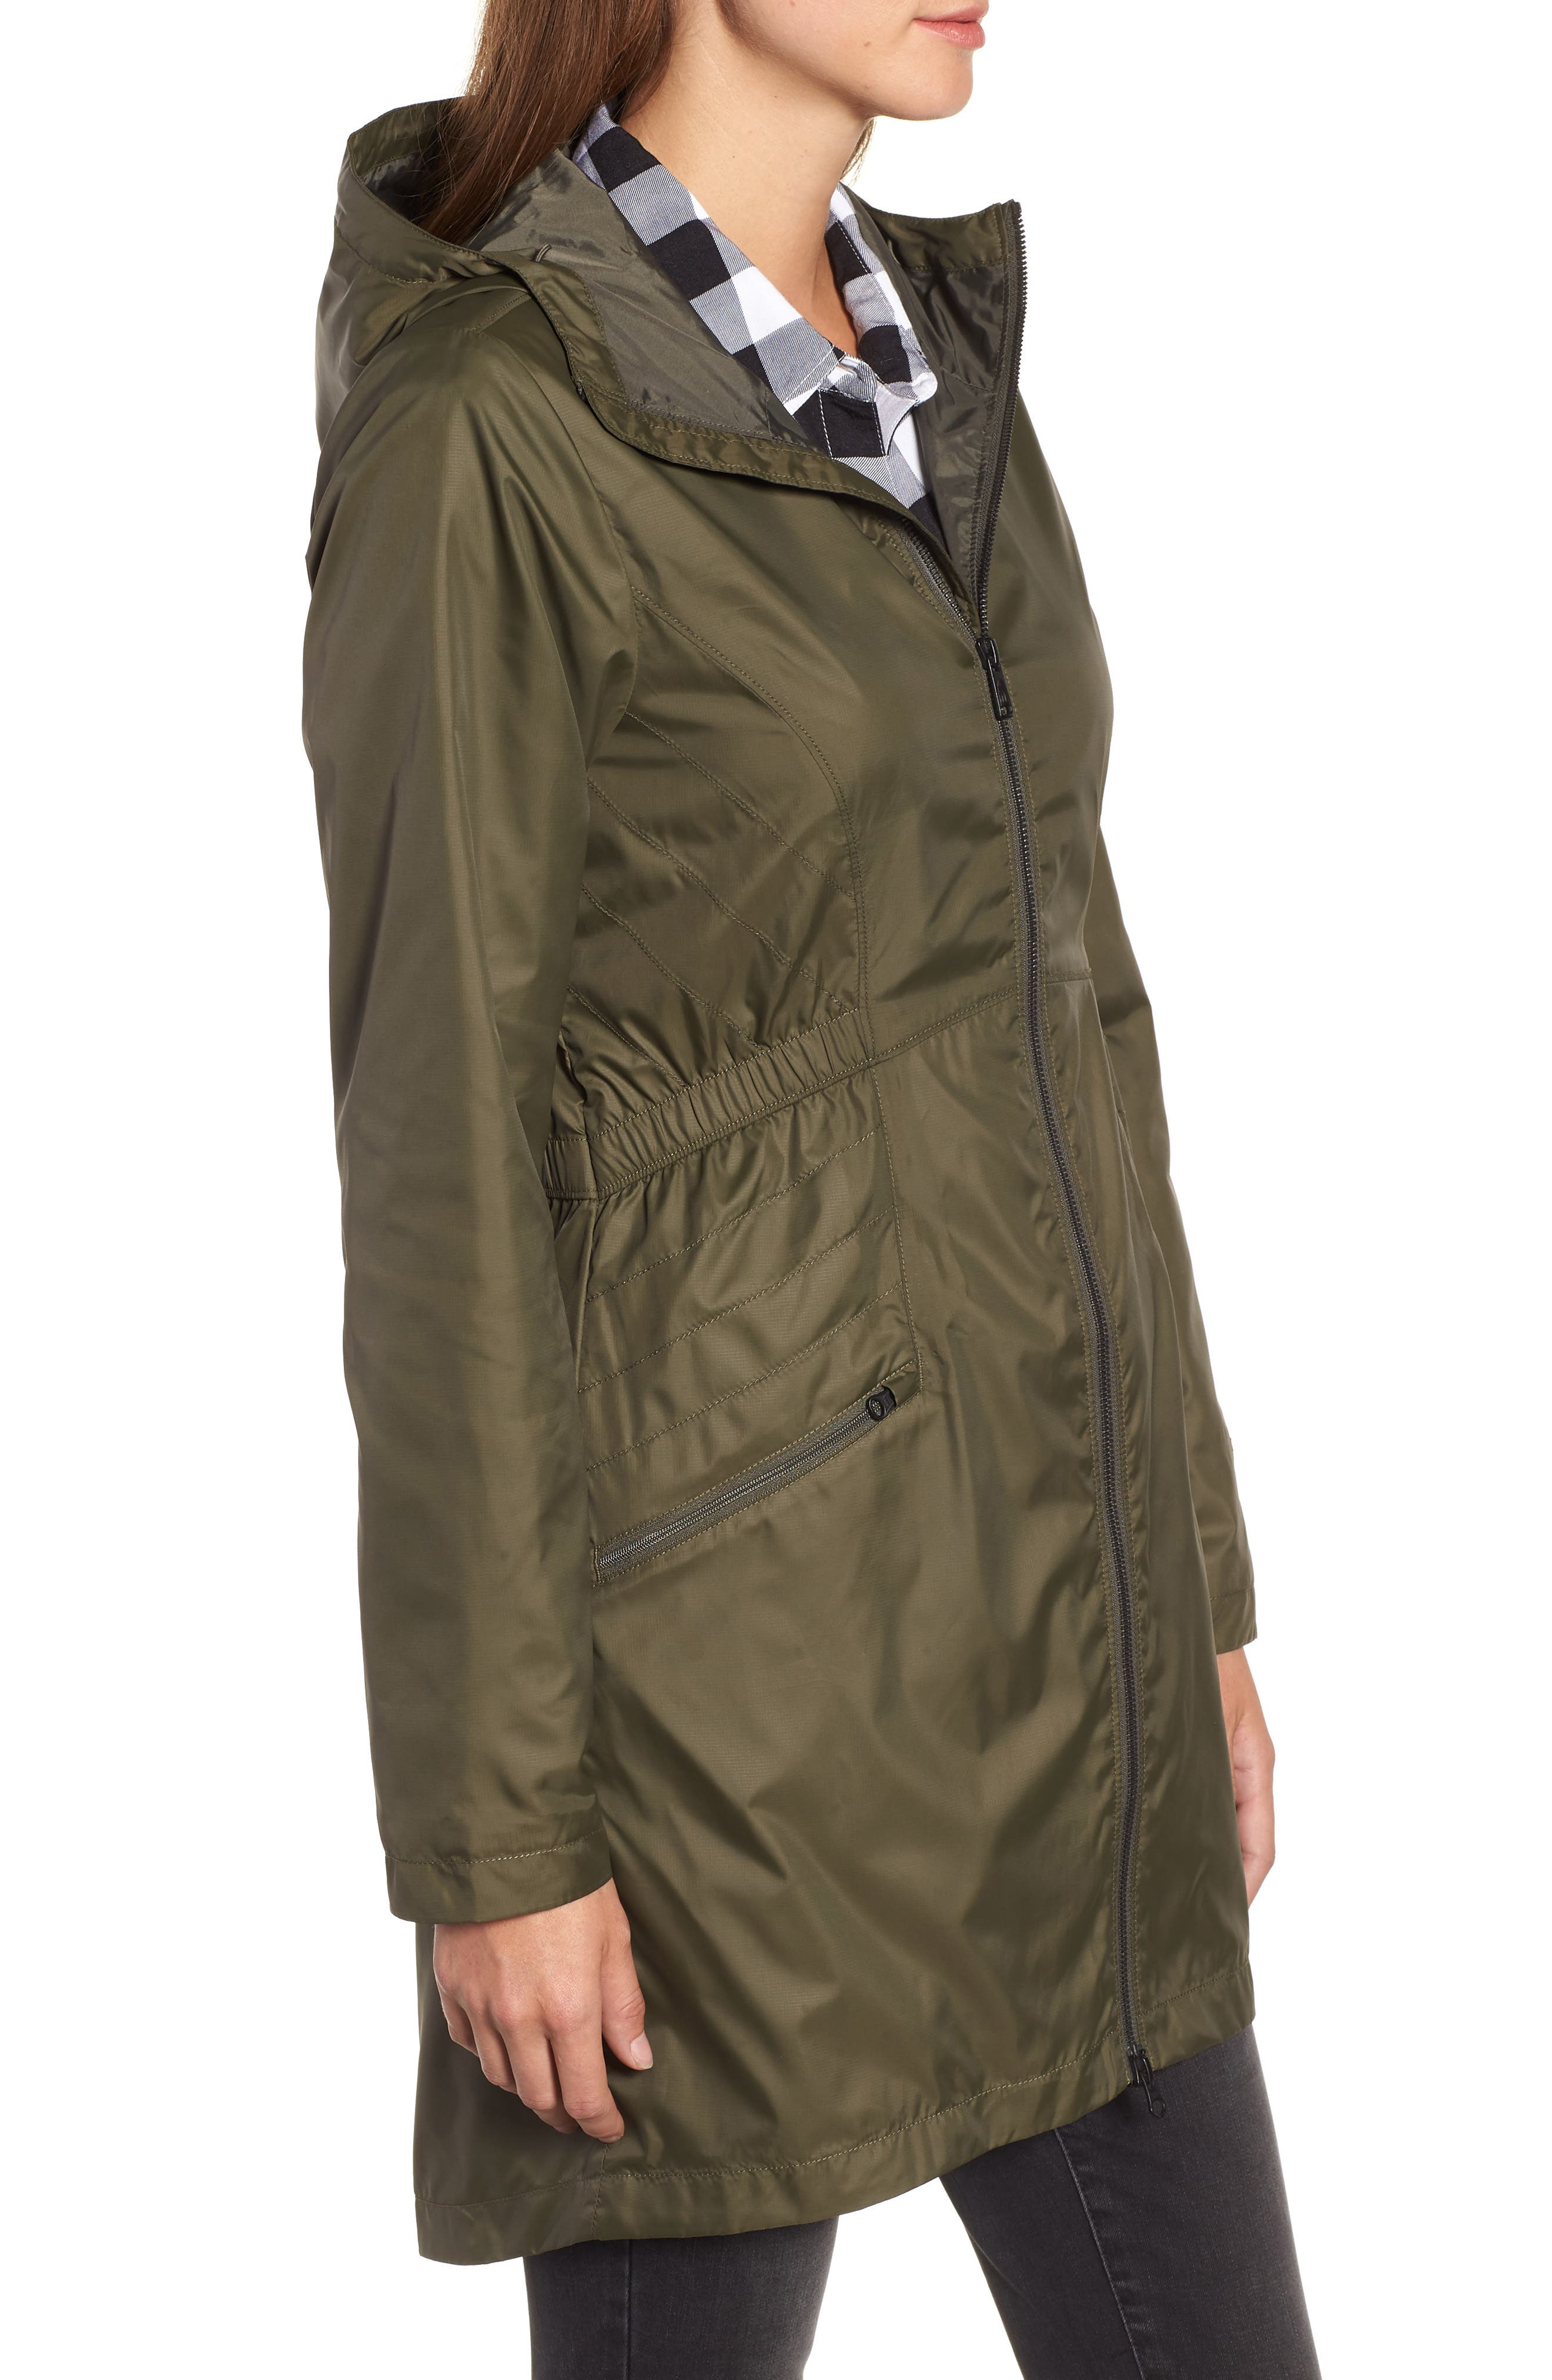 Rissy 2 Wind Resistant Jacket,                             Alternate thumbnail 3, color,                             NEW TAUPE GREEN